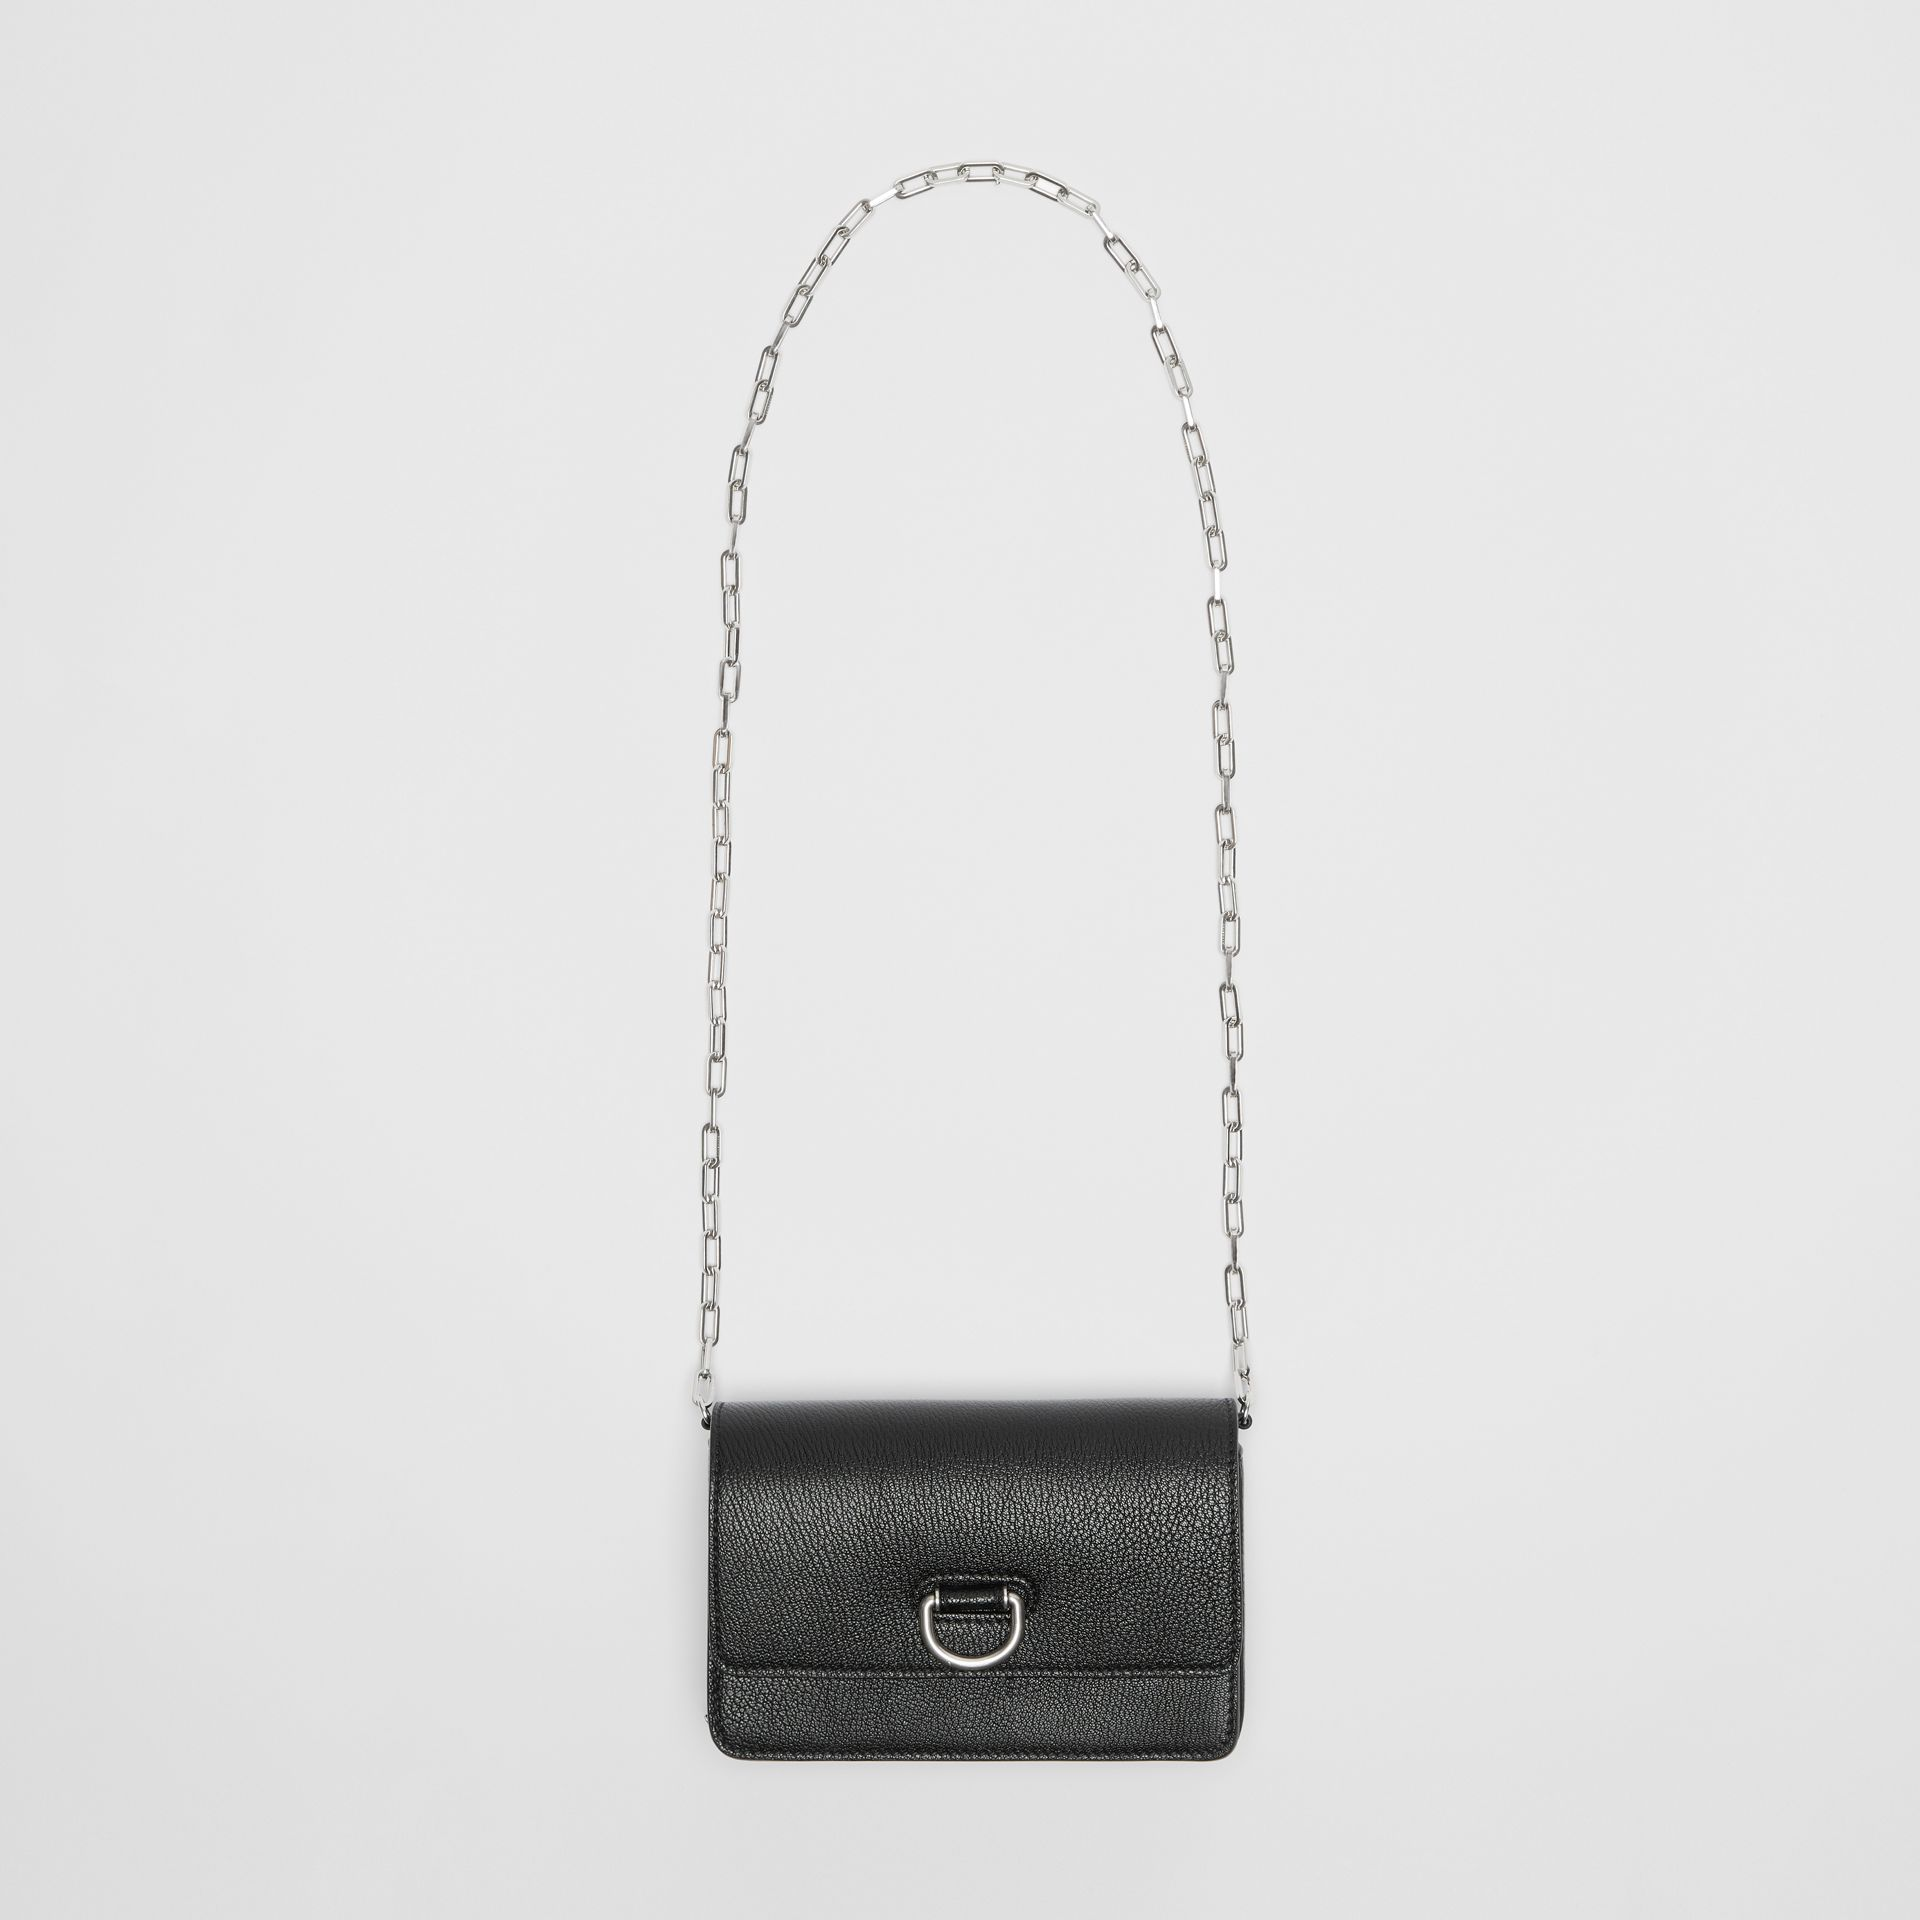 Mini sac The D-ring en cuir (Noir) - Femme | Burberry Canada - photo de la galerie 4